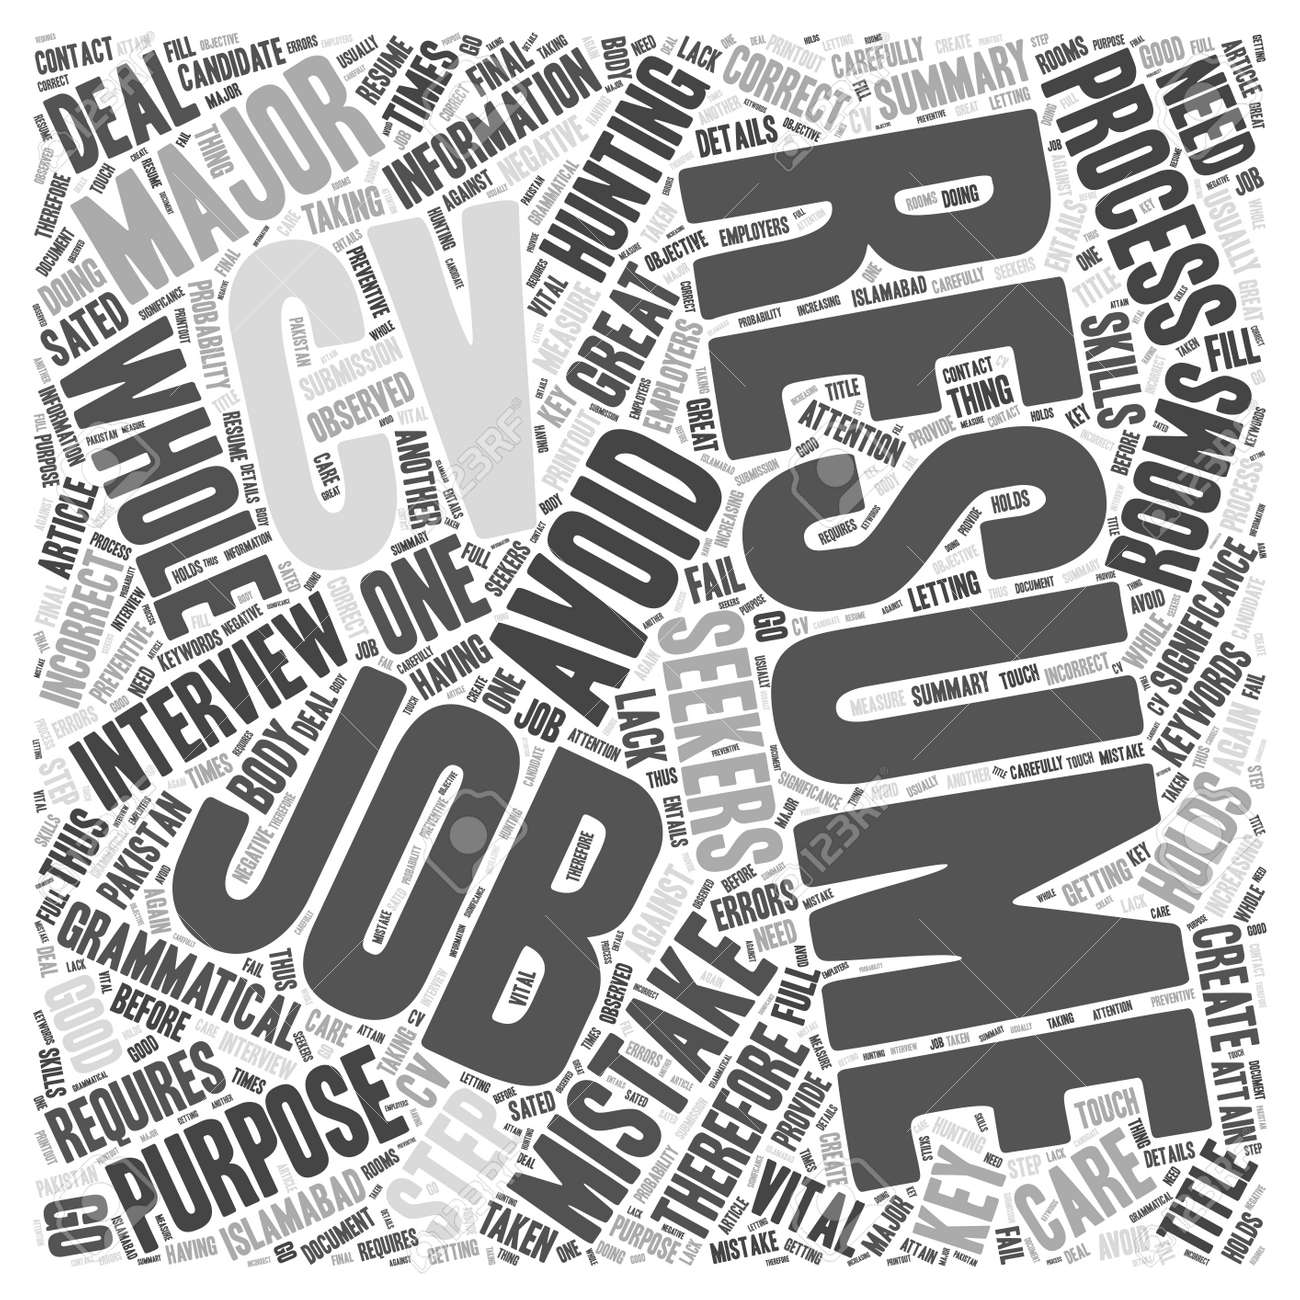 Resume Mistakes Key Resume Mistakes To Avoid Word Cloud Concept